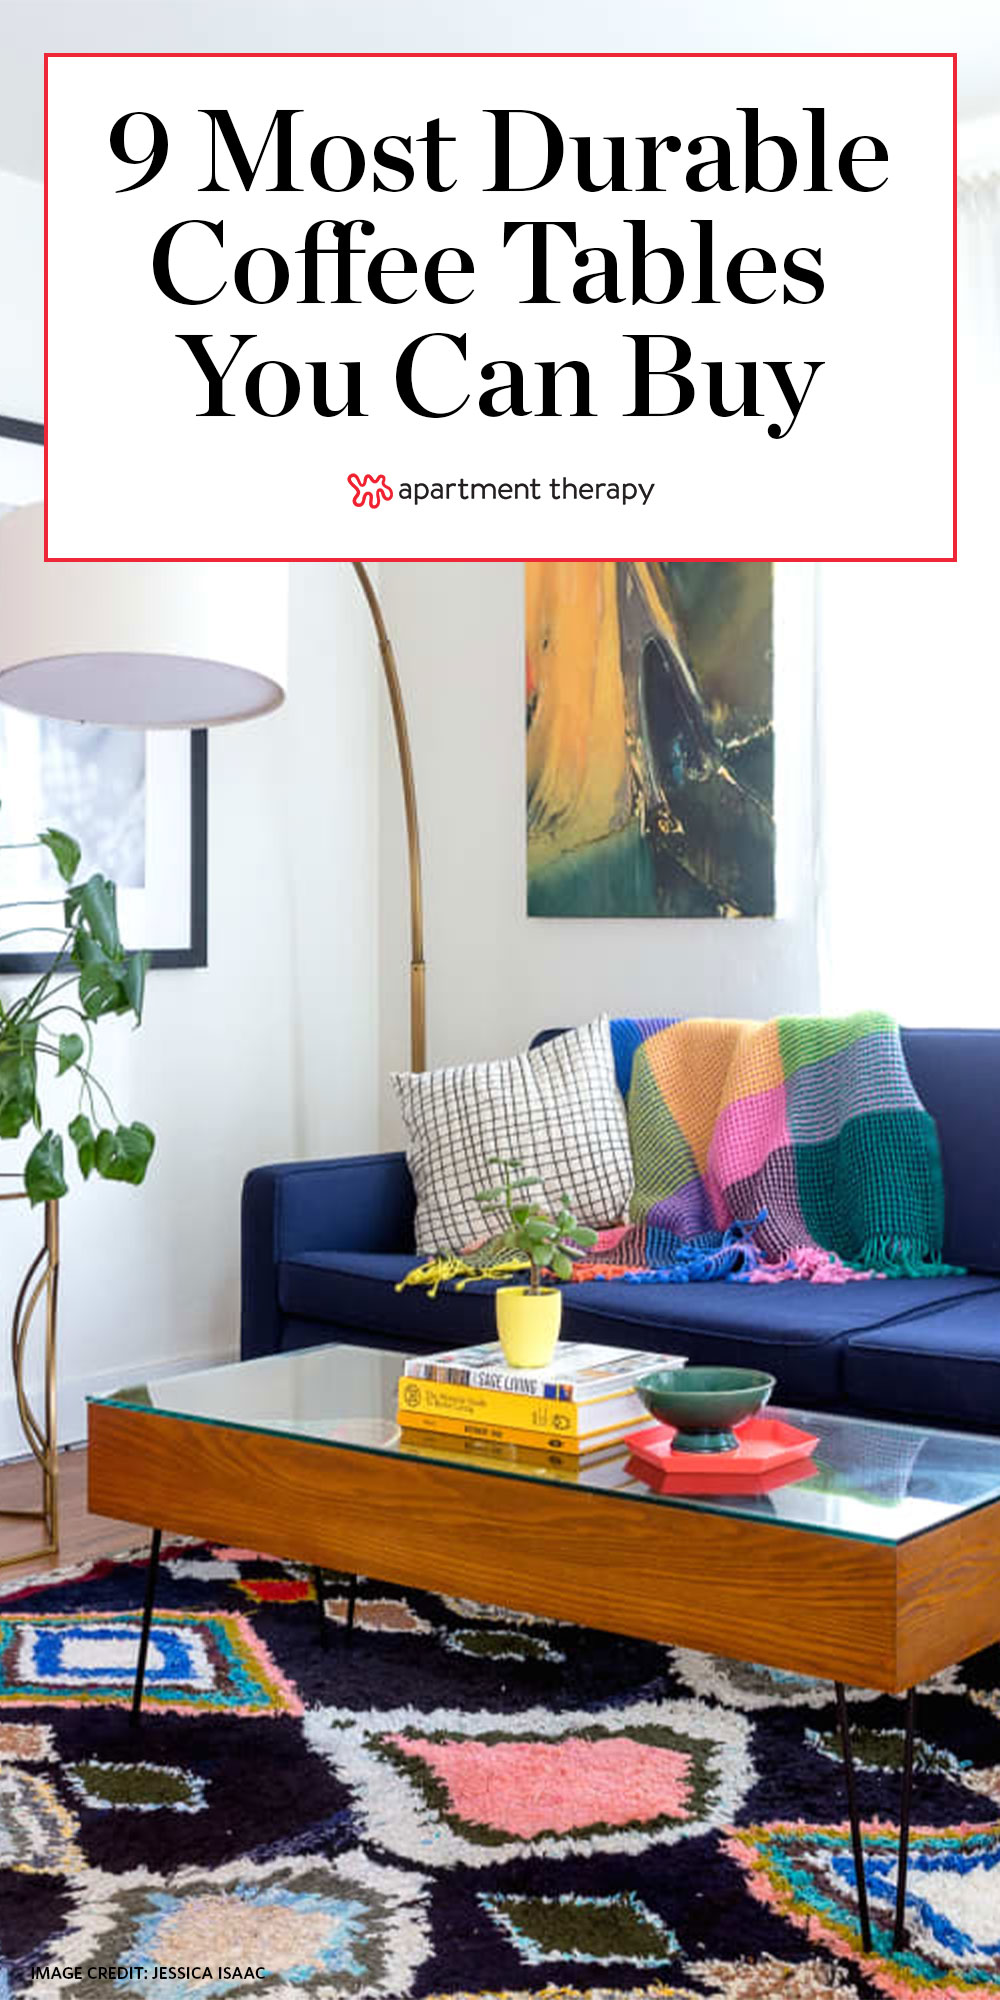 9 Durable Coffee Tables That Can Function As Dining Apartment Therapy